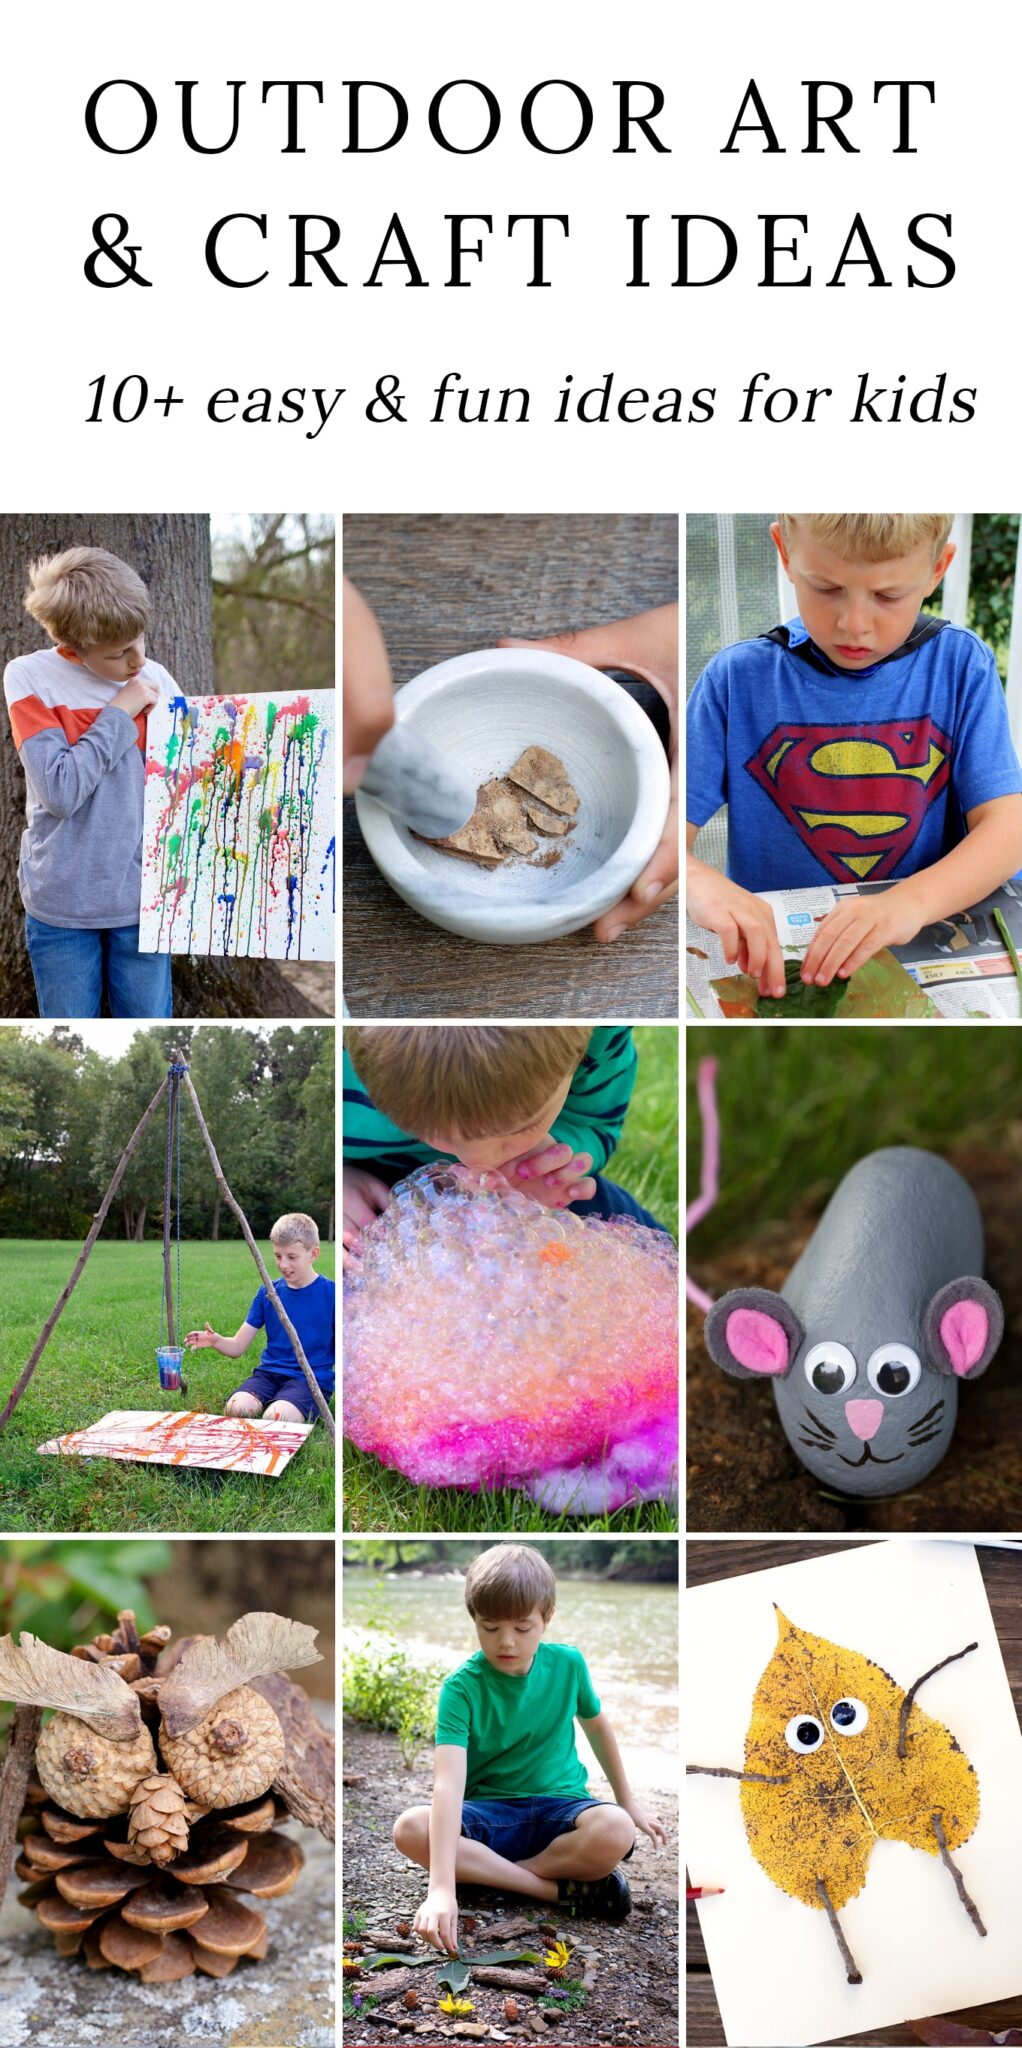 Discover creative and fun outdoor art ideas for kids! These awesome boredom-busting art projects are perfect for backyards, summer camp, preschool, and forest school…especially in the warm summer months when you want kids outdoors enjoying the beautiful weather. #outdoor #art via @firefliesandmudpies